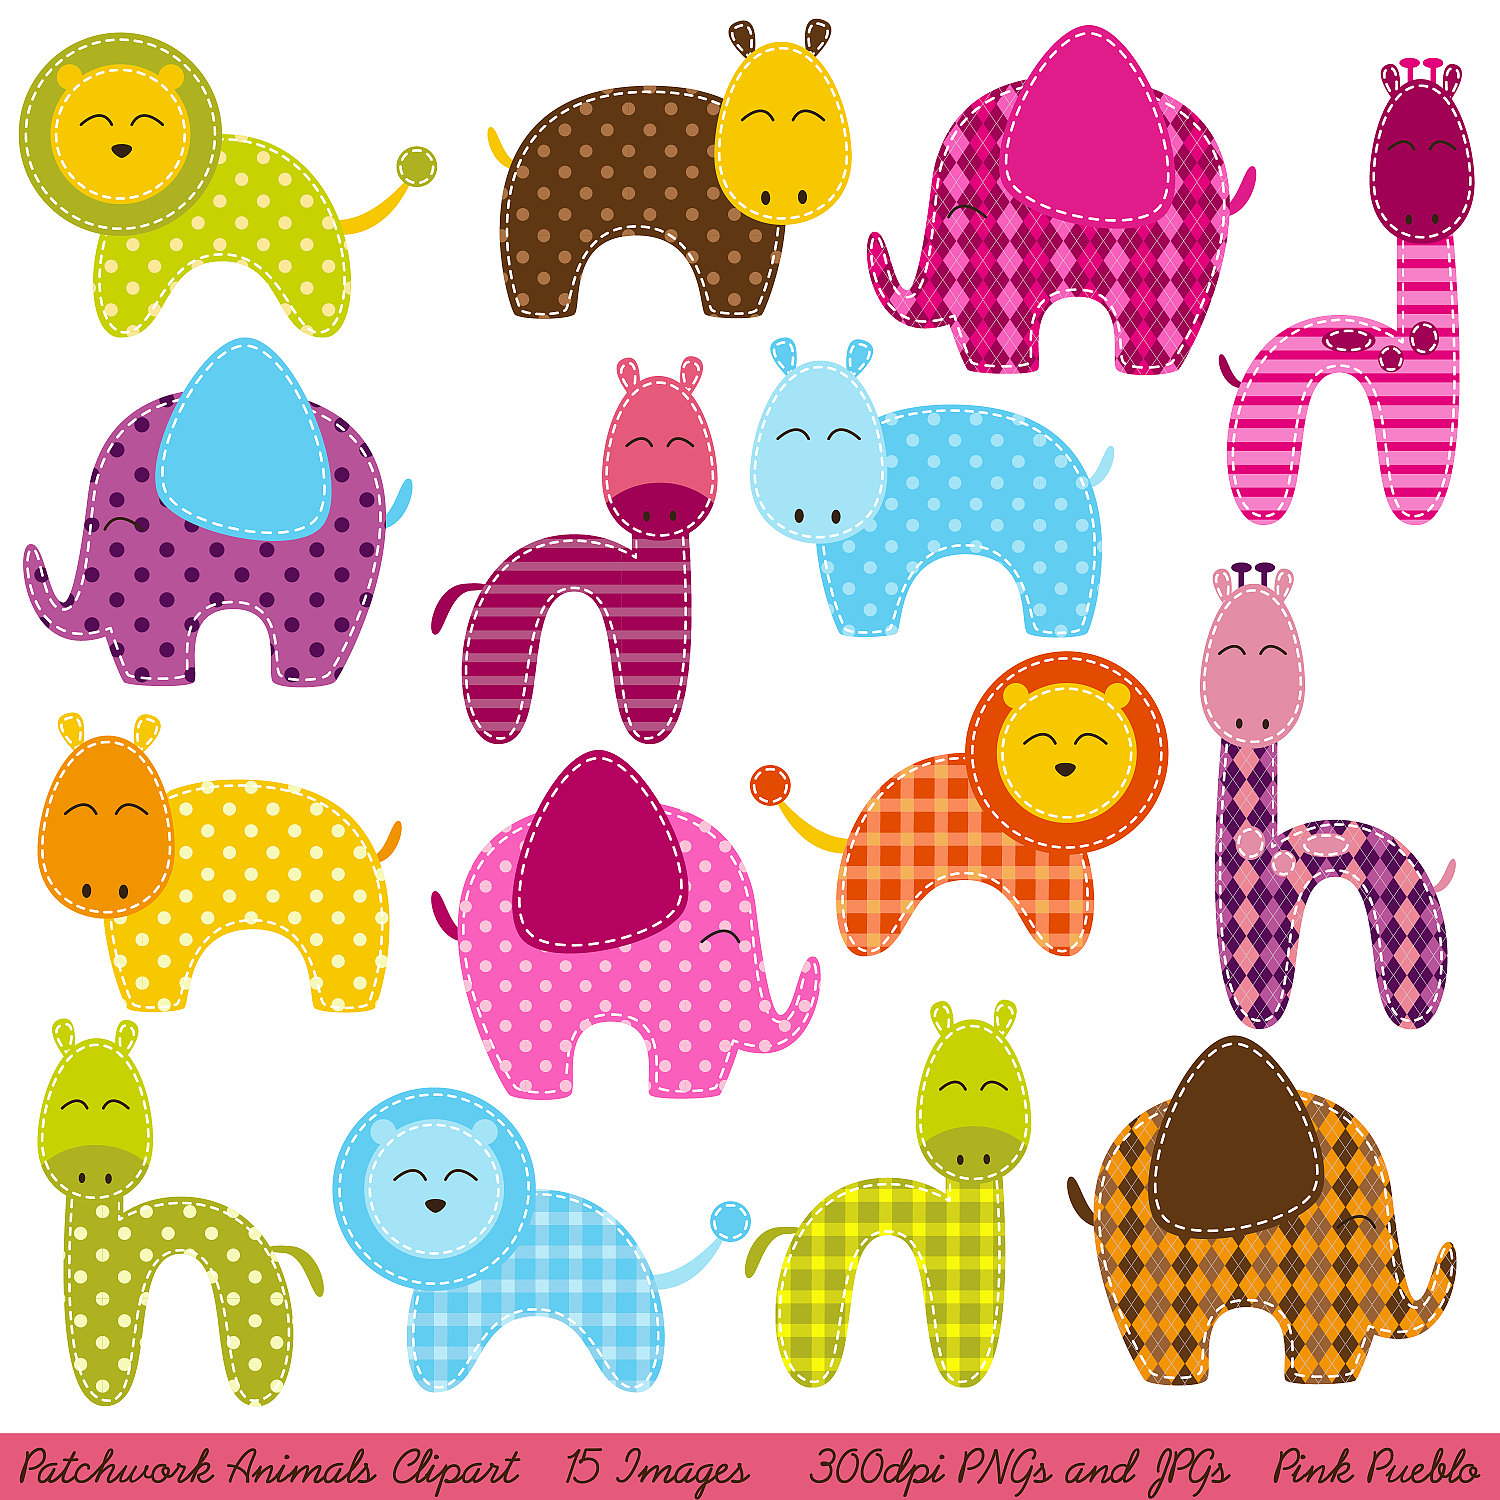 Patchwork Animals Clipart Clip Art Zoo Animals By Pinkpueblo